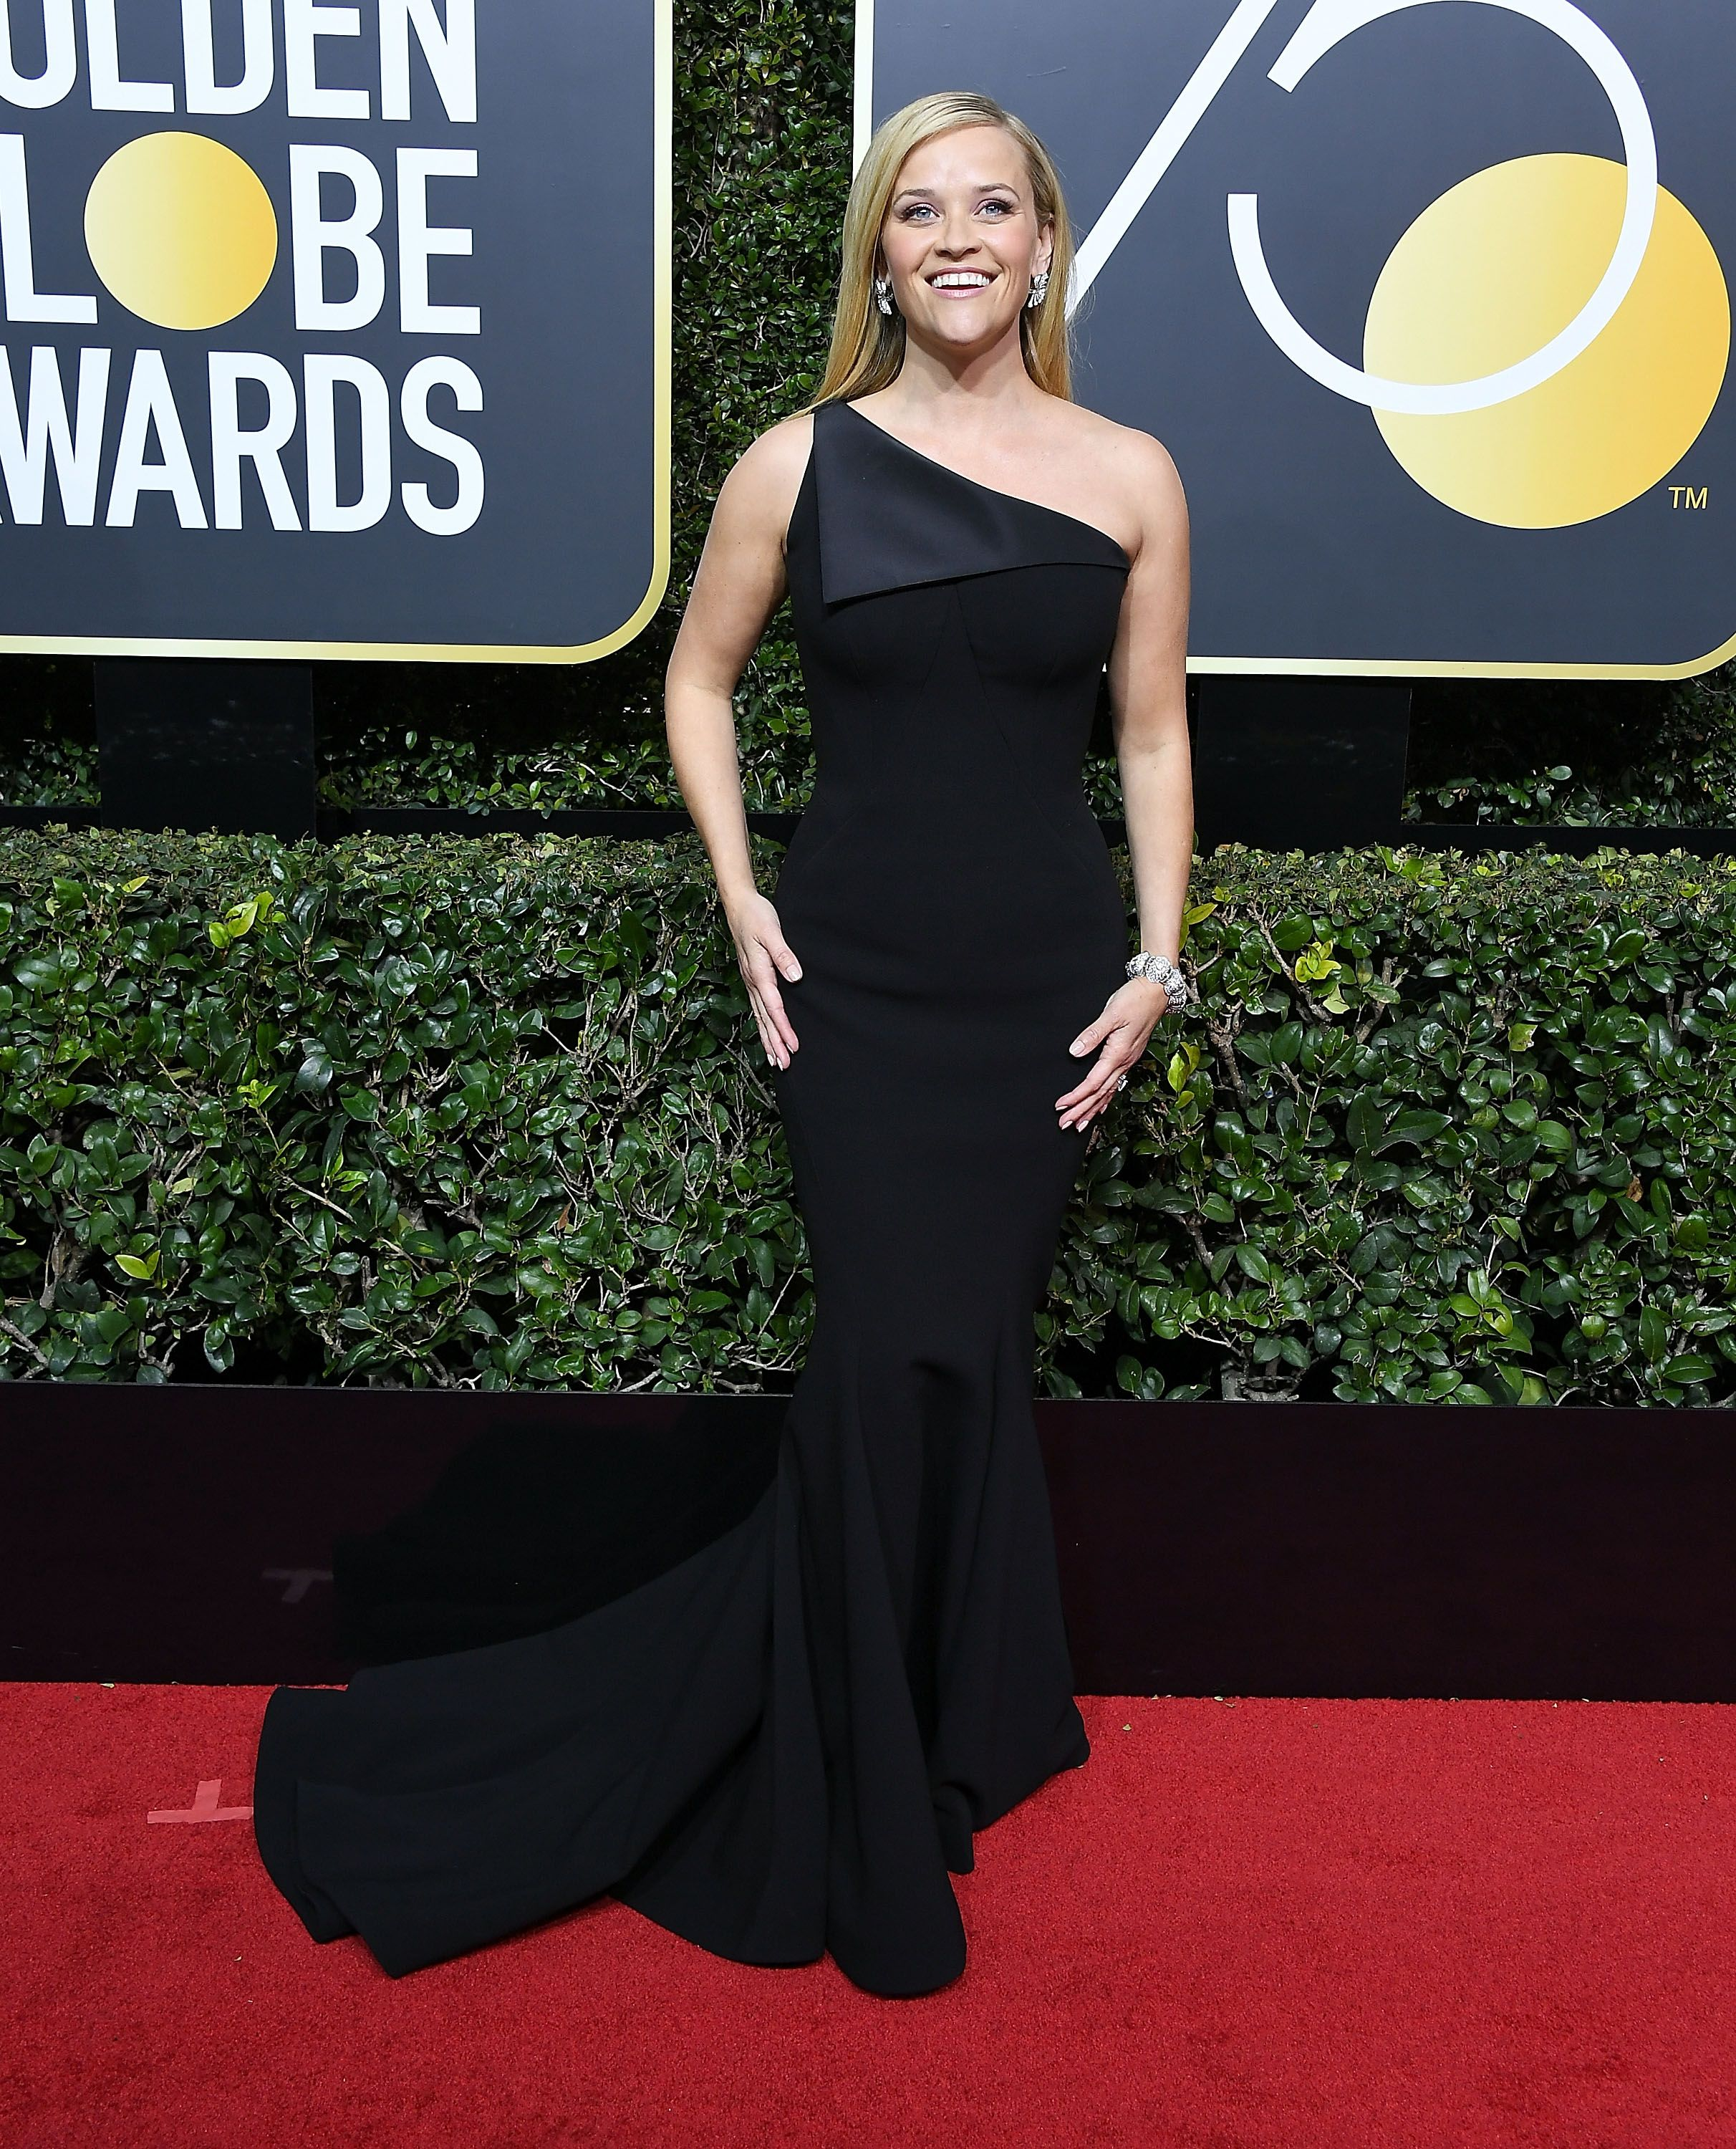 Witherspoon picked a simple one-shouldered Zac Posen gown for the 2018 Golden Globe Awards, striking the perfect understated, yet elegant note.